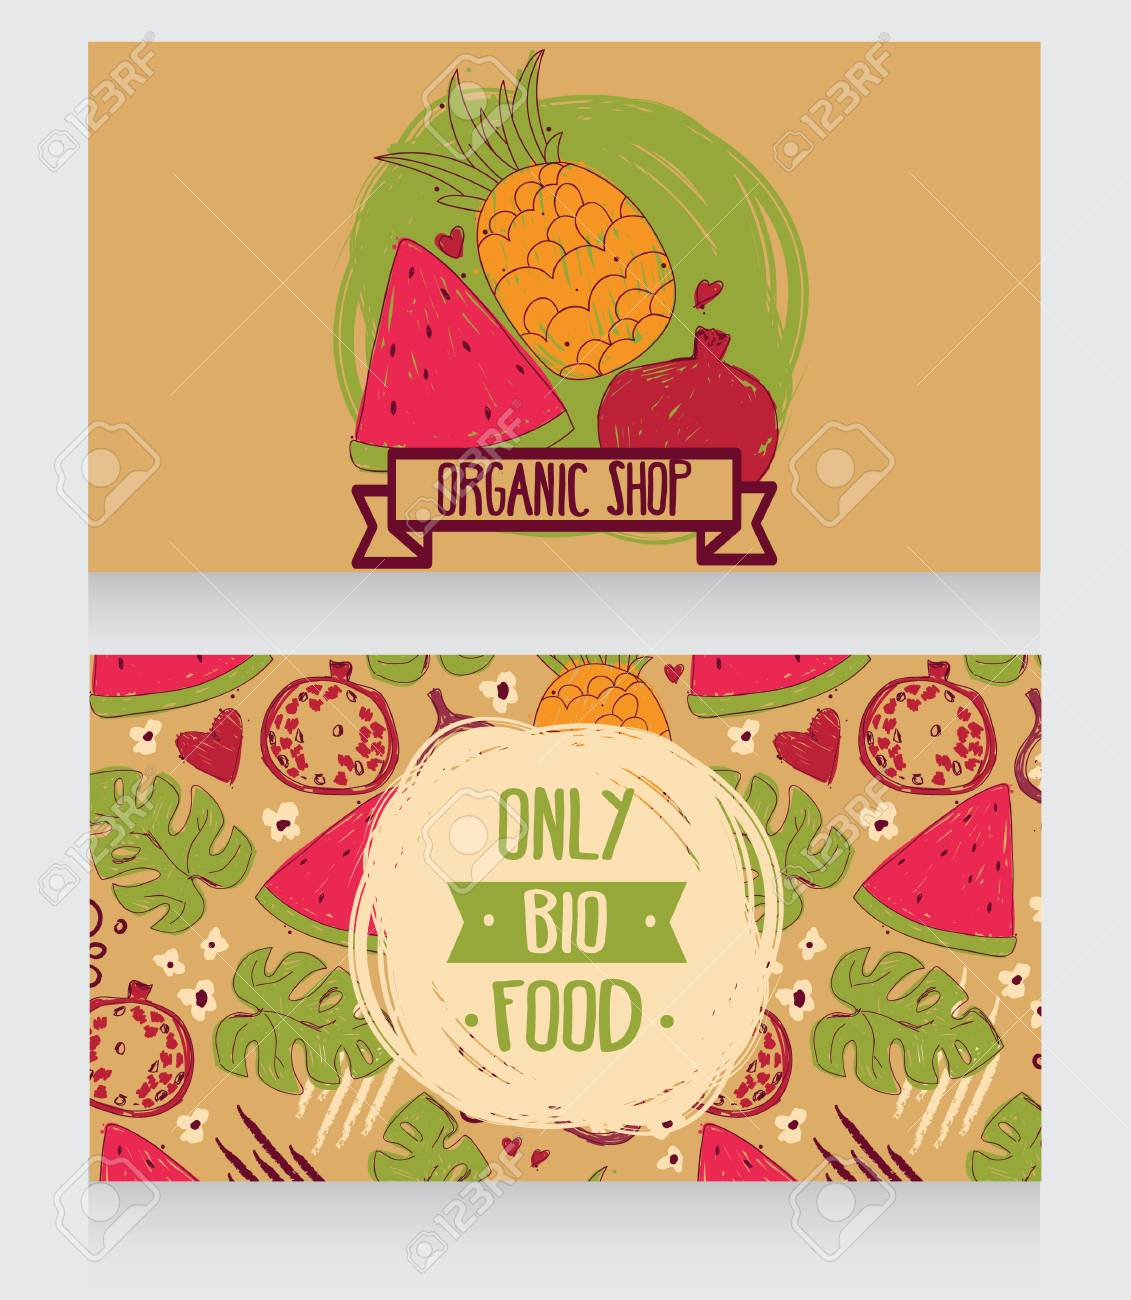 Business cards template for organic foods shop or vegan cafe business cards template for organic foods shop or vegan cafe vector illustration stock vector wajeb Image collections